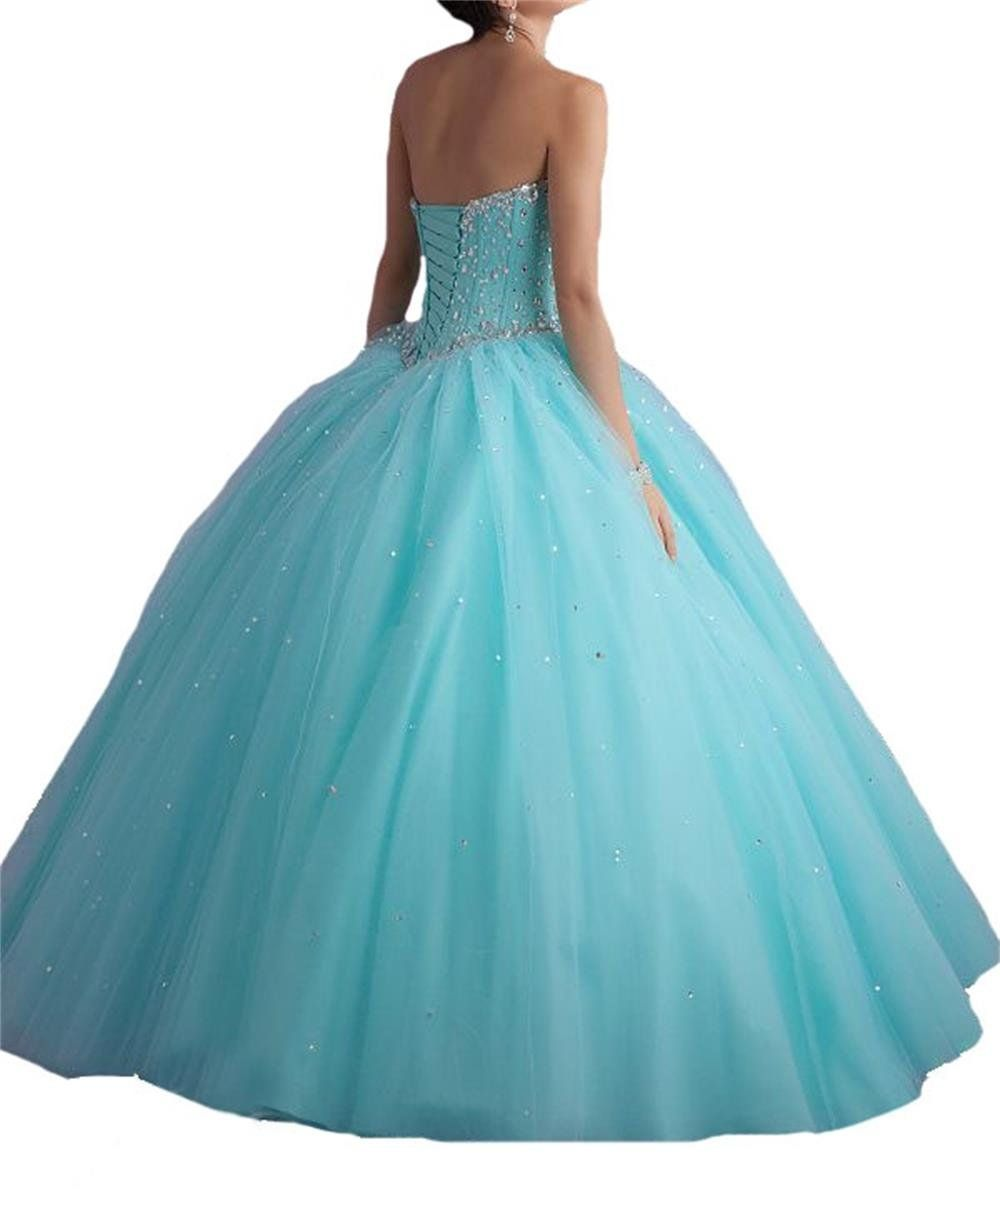 Banzhang womens quinceanera party dresses jacket long prom ball gown